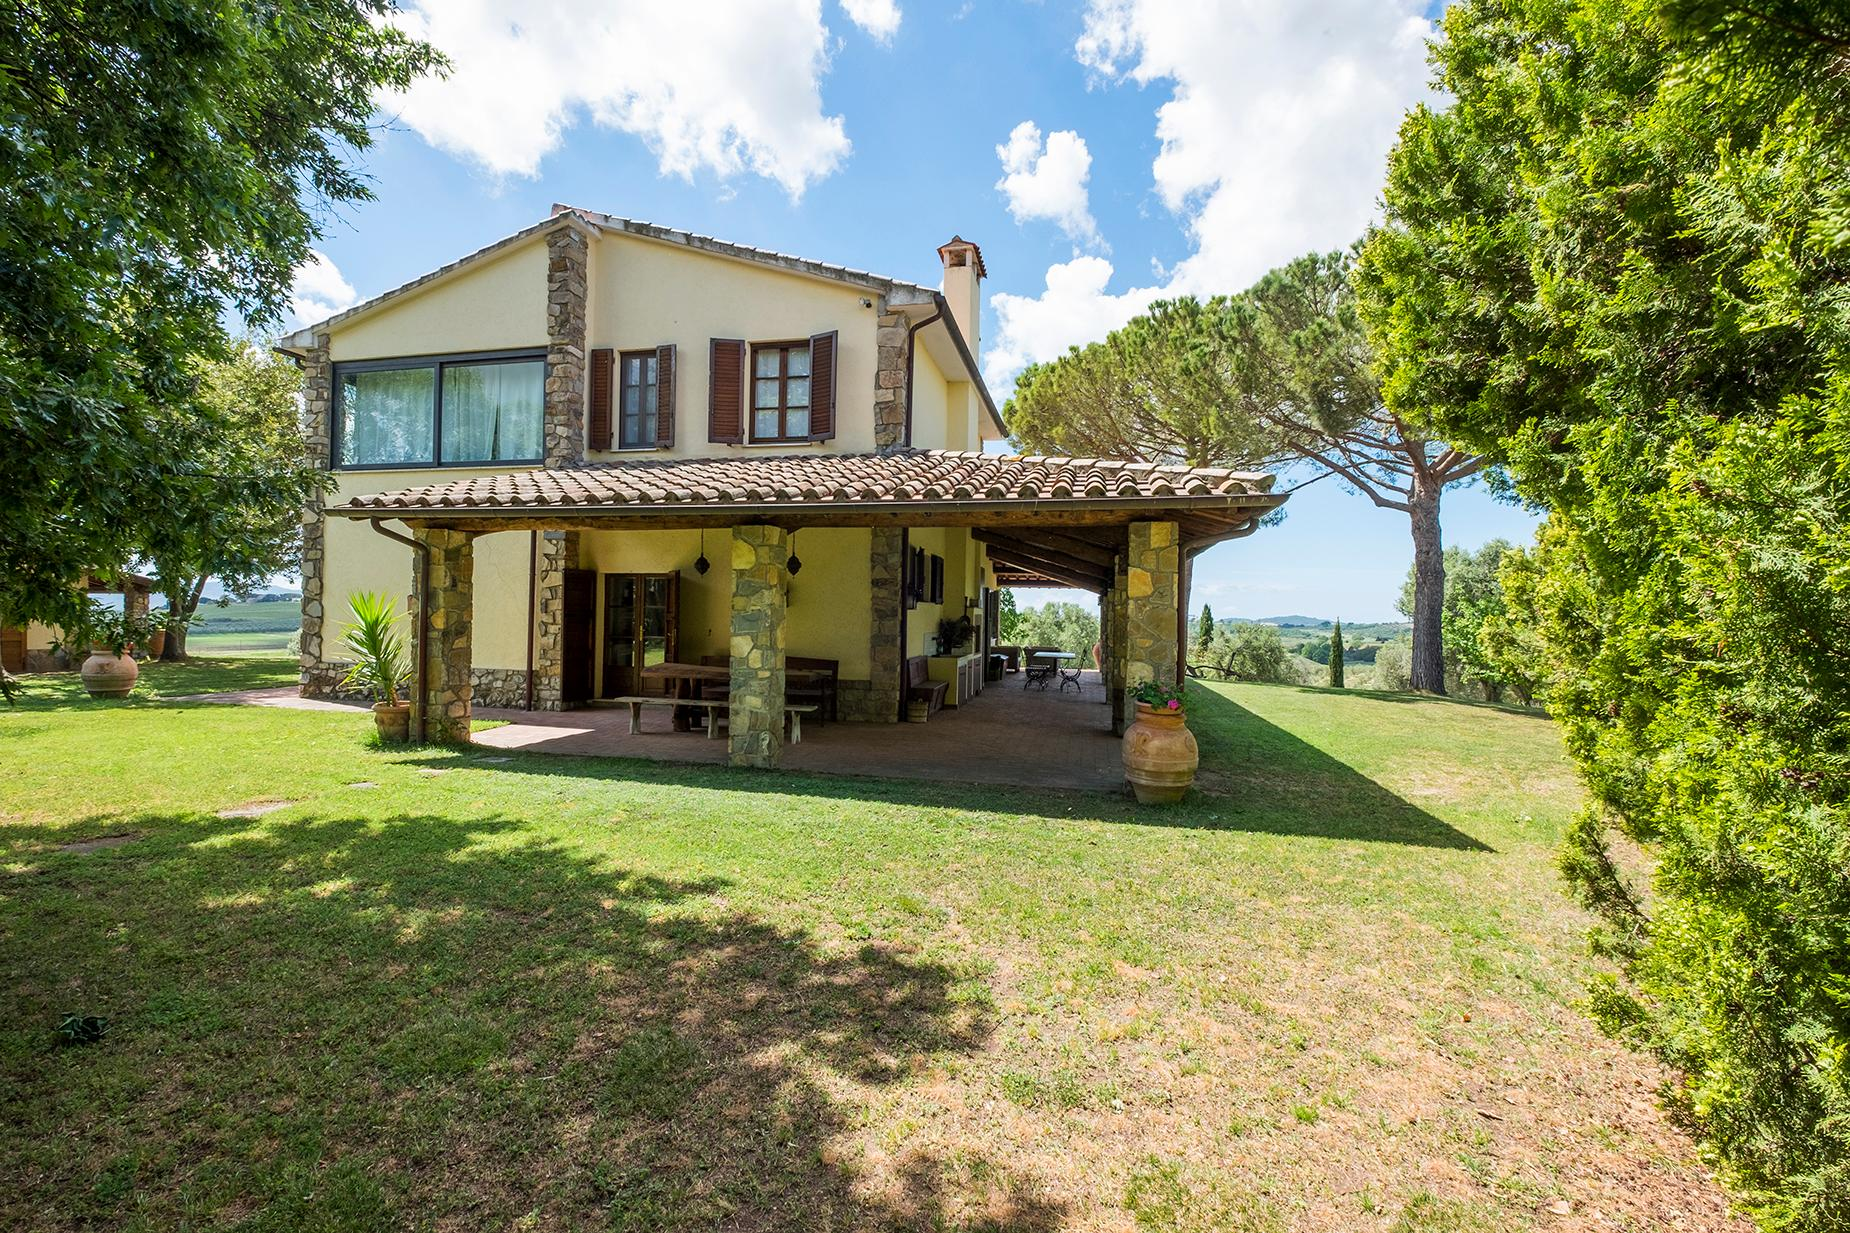 Finely restored farmhouse in the Tuscan countryside - 13